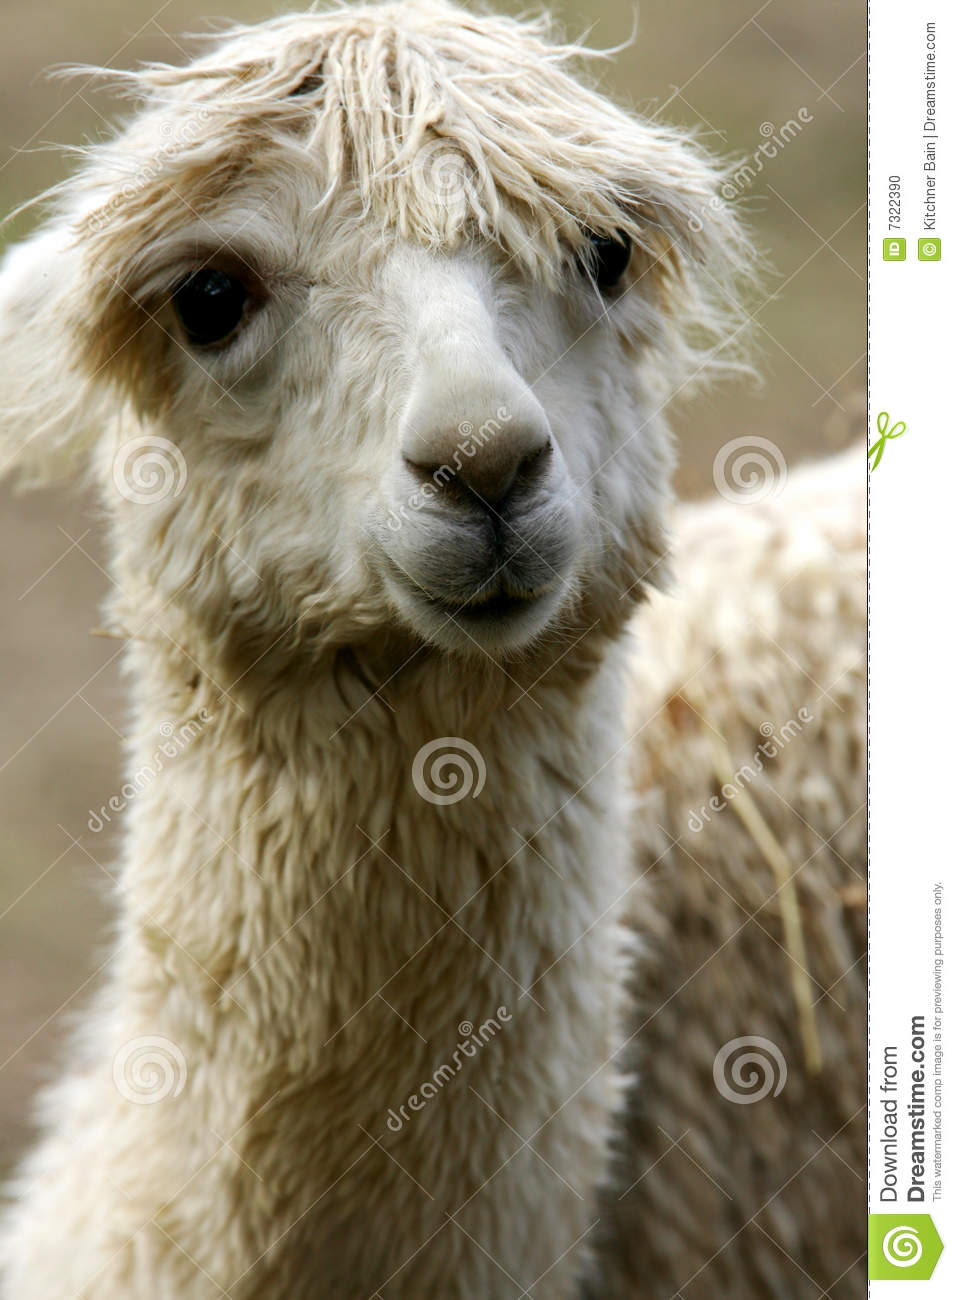 Lamas Stock Photo - Image: 7322390